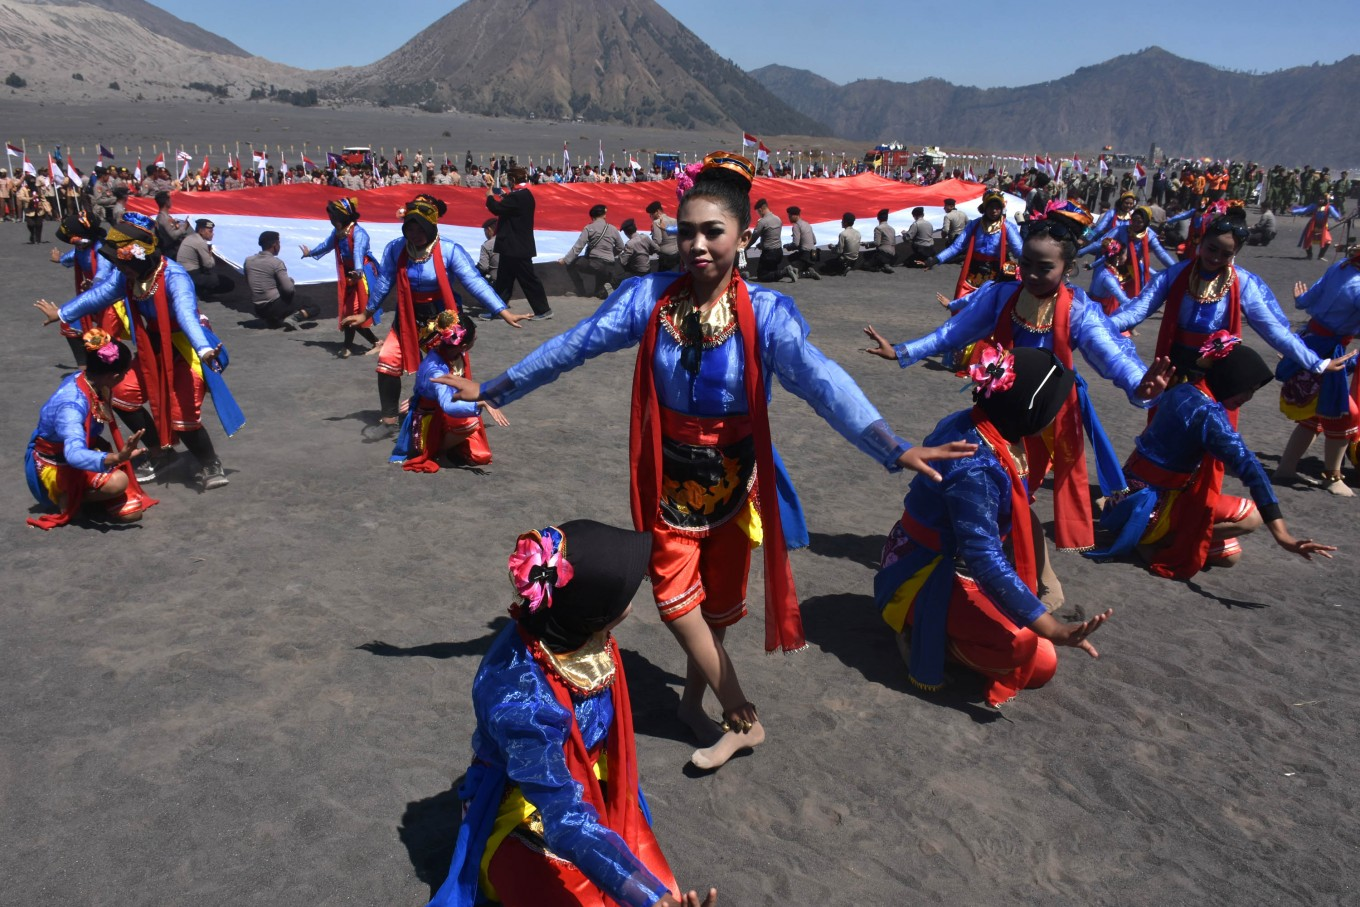 Dancers also enliven the event.